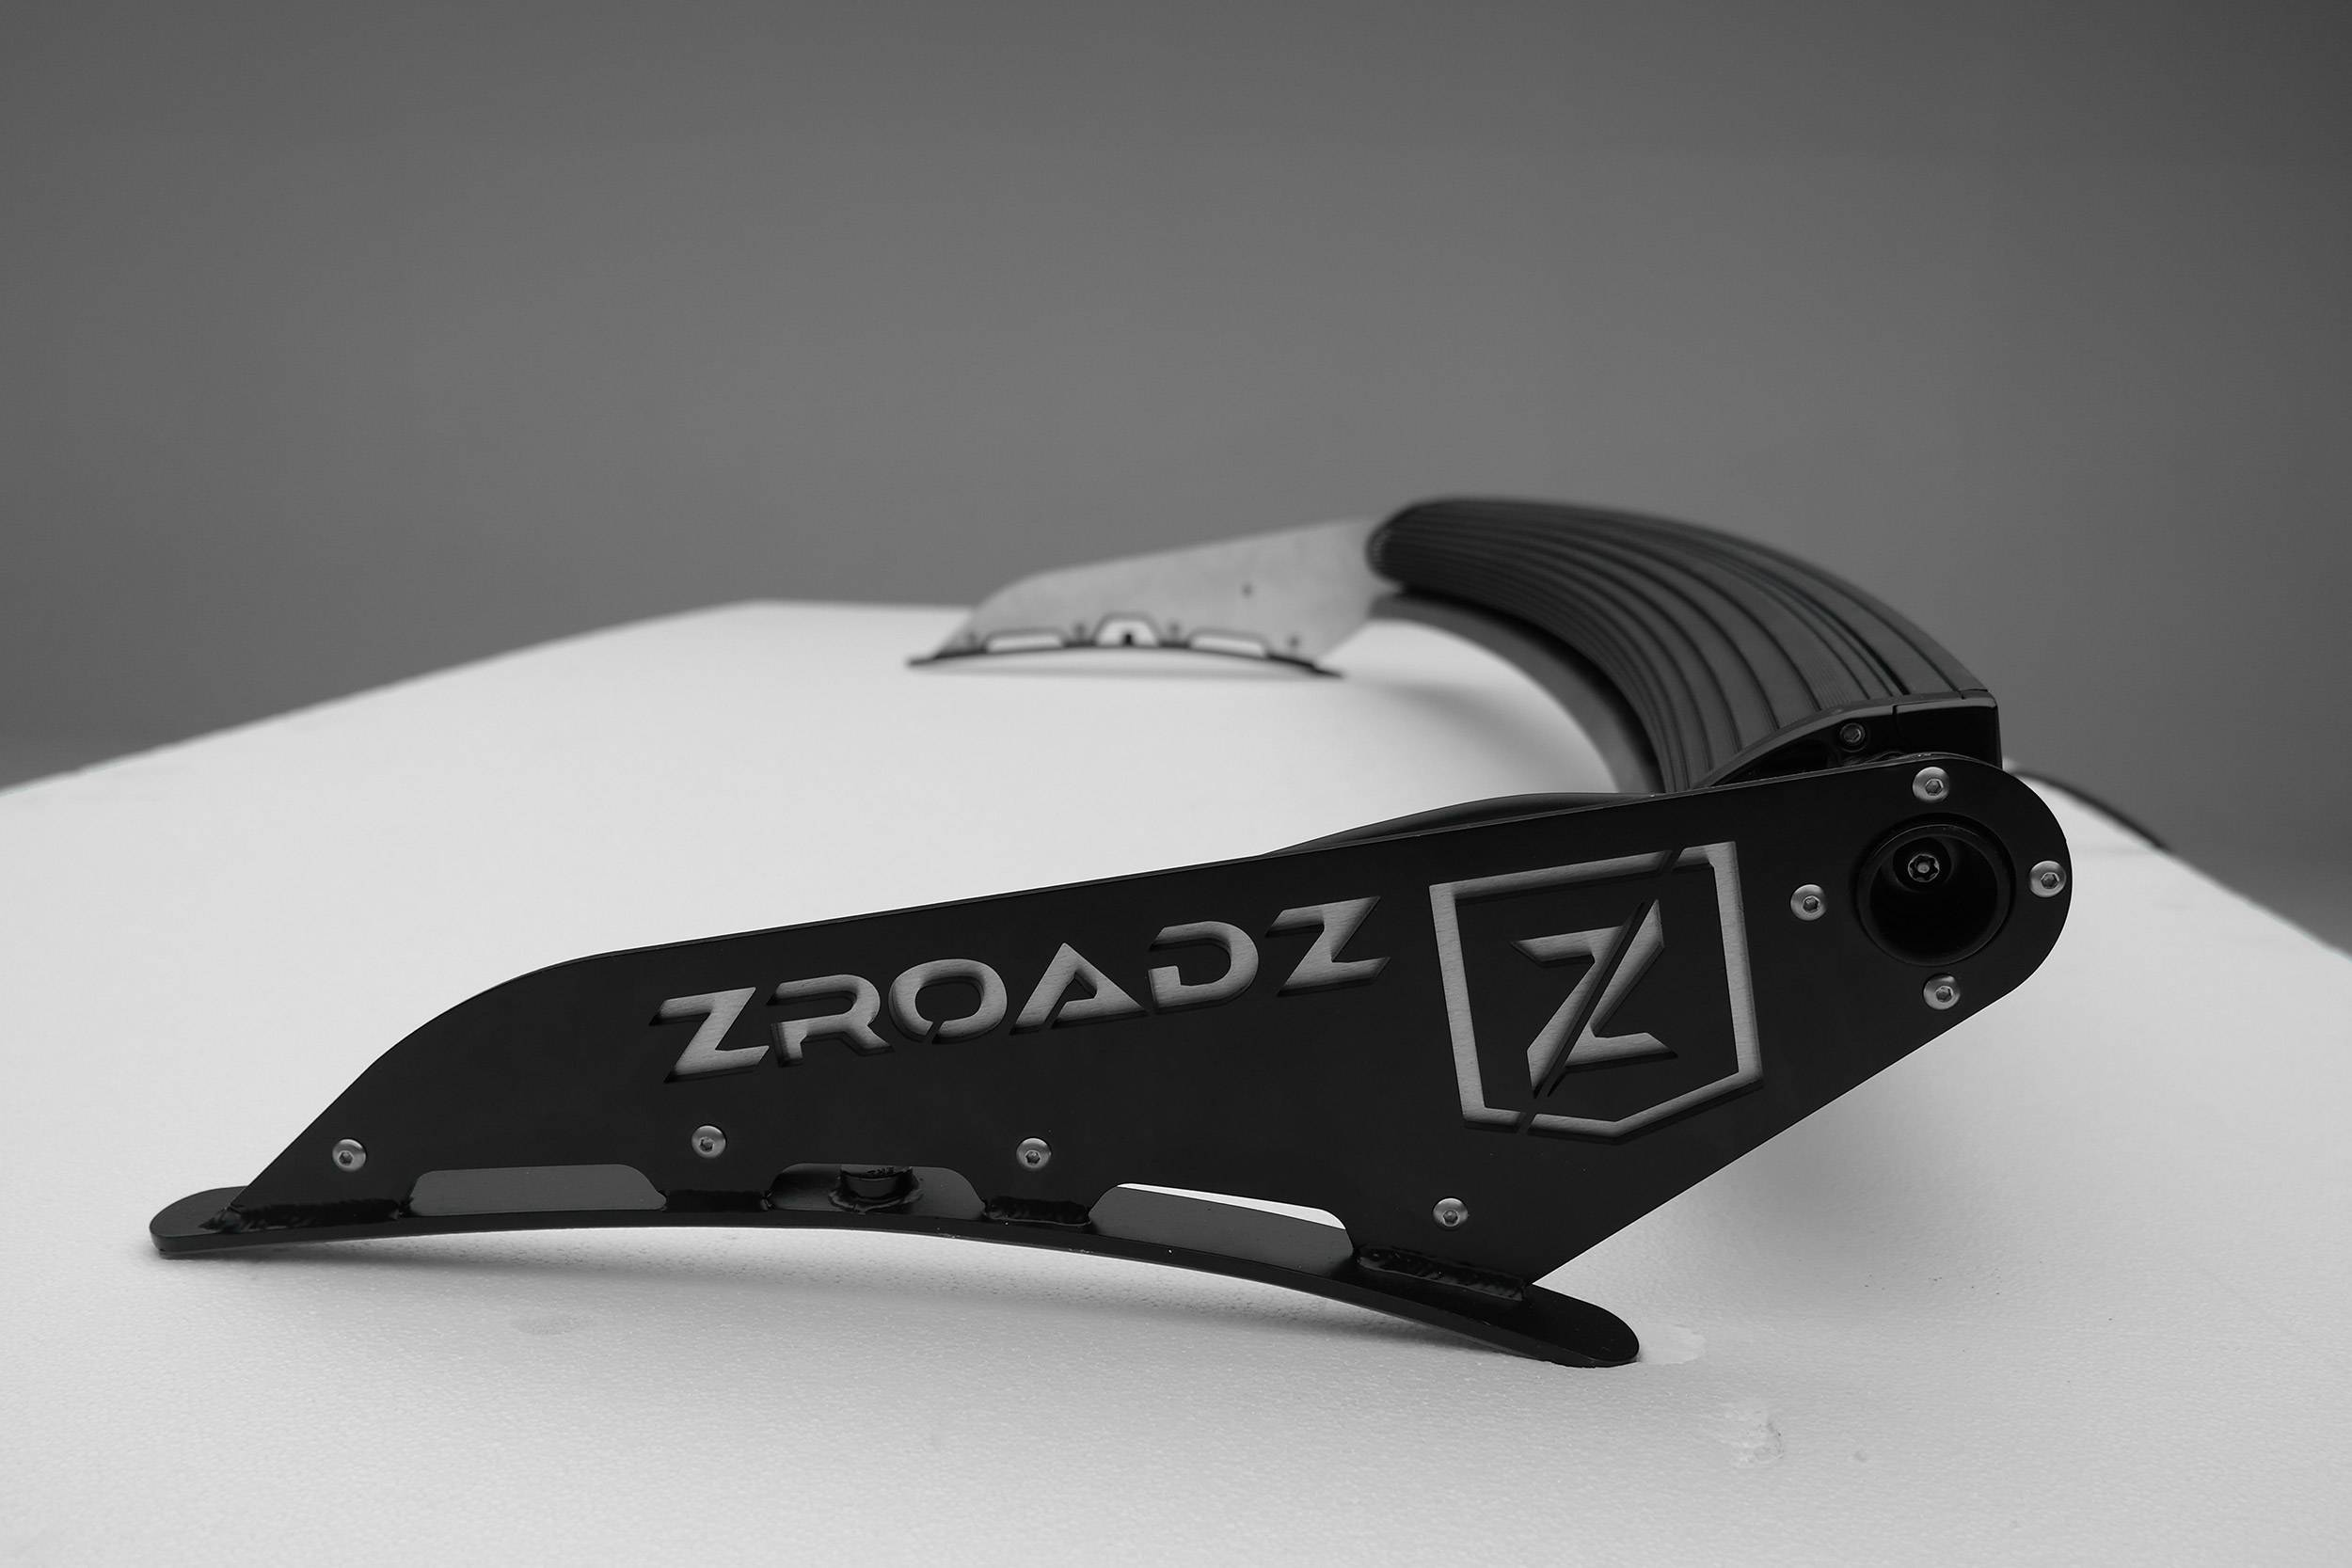 ZROADZ - 2007-2013 Silverado, Sierra 1500 Front Roof LED Bracket to mount (1) 50 Inch Curved LED Light Bar - PN #Z332051